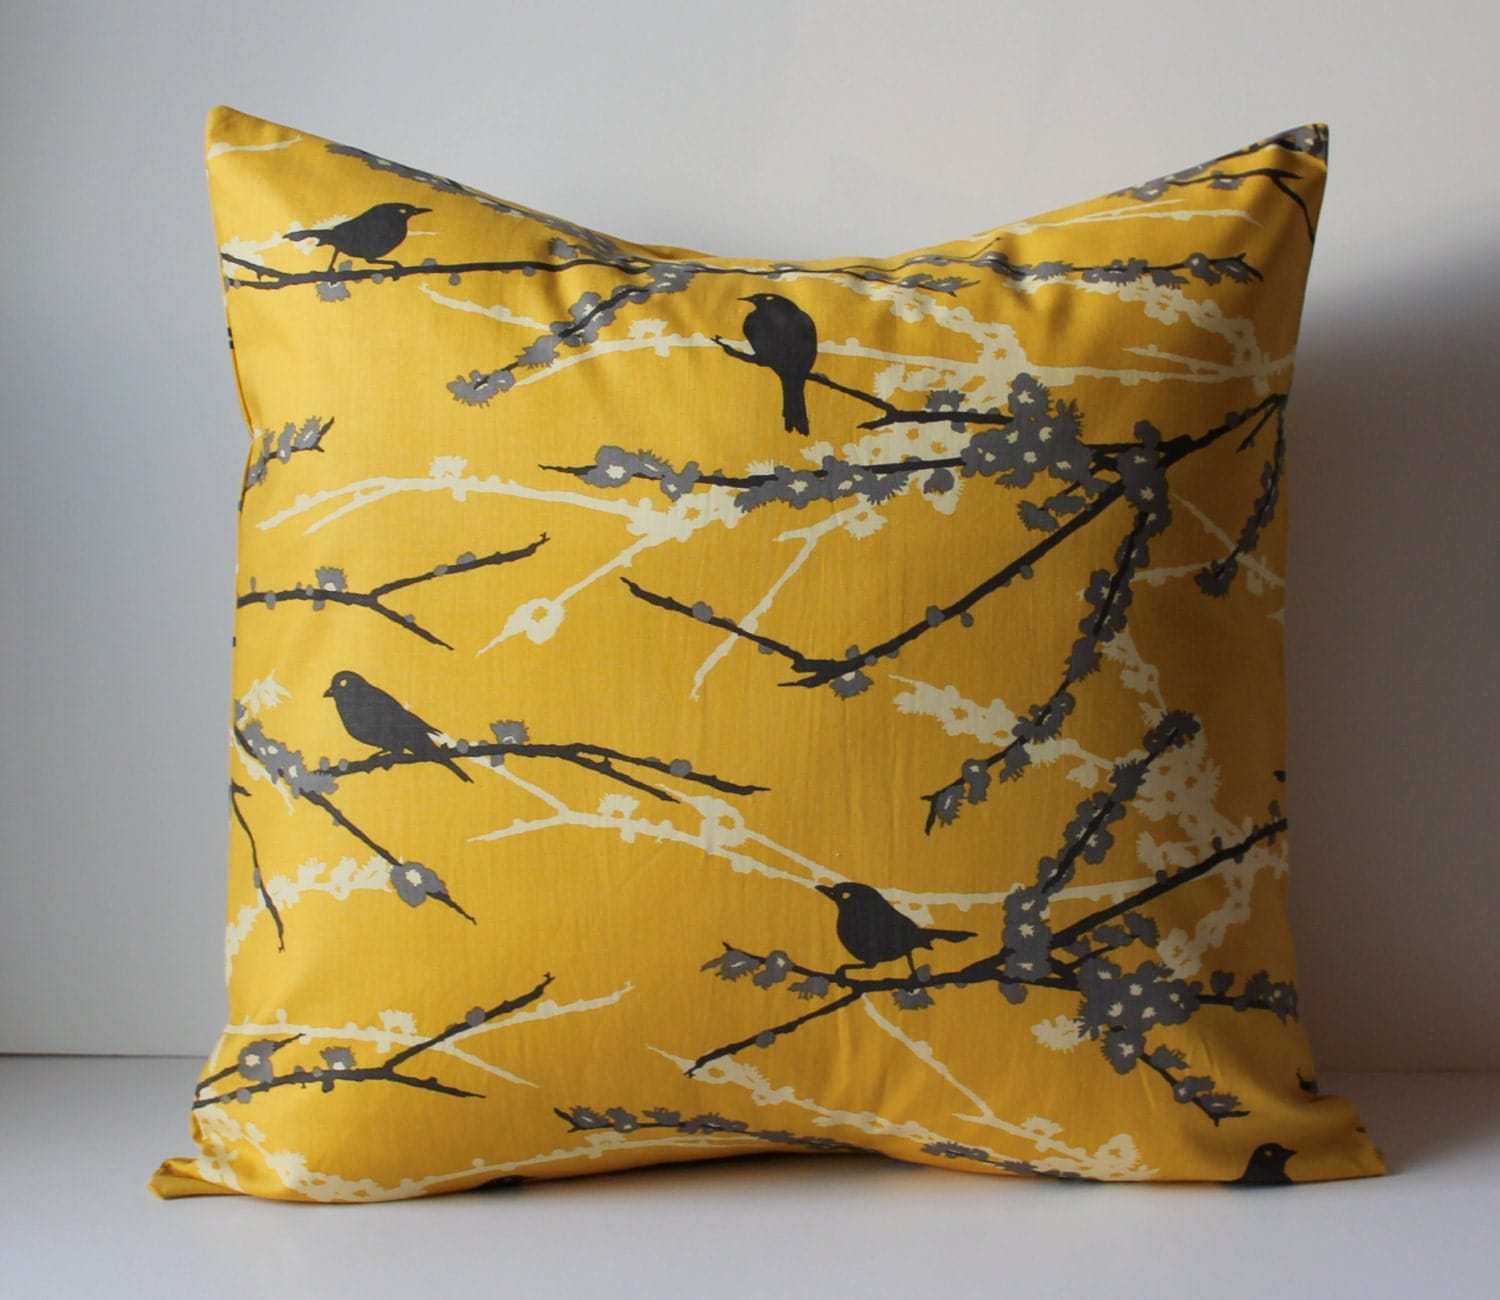 Decorative Throw Pillows Etsy : Decorative Pillows Cushion Cover Mustard Yellow & by SewGracious